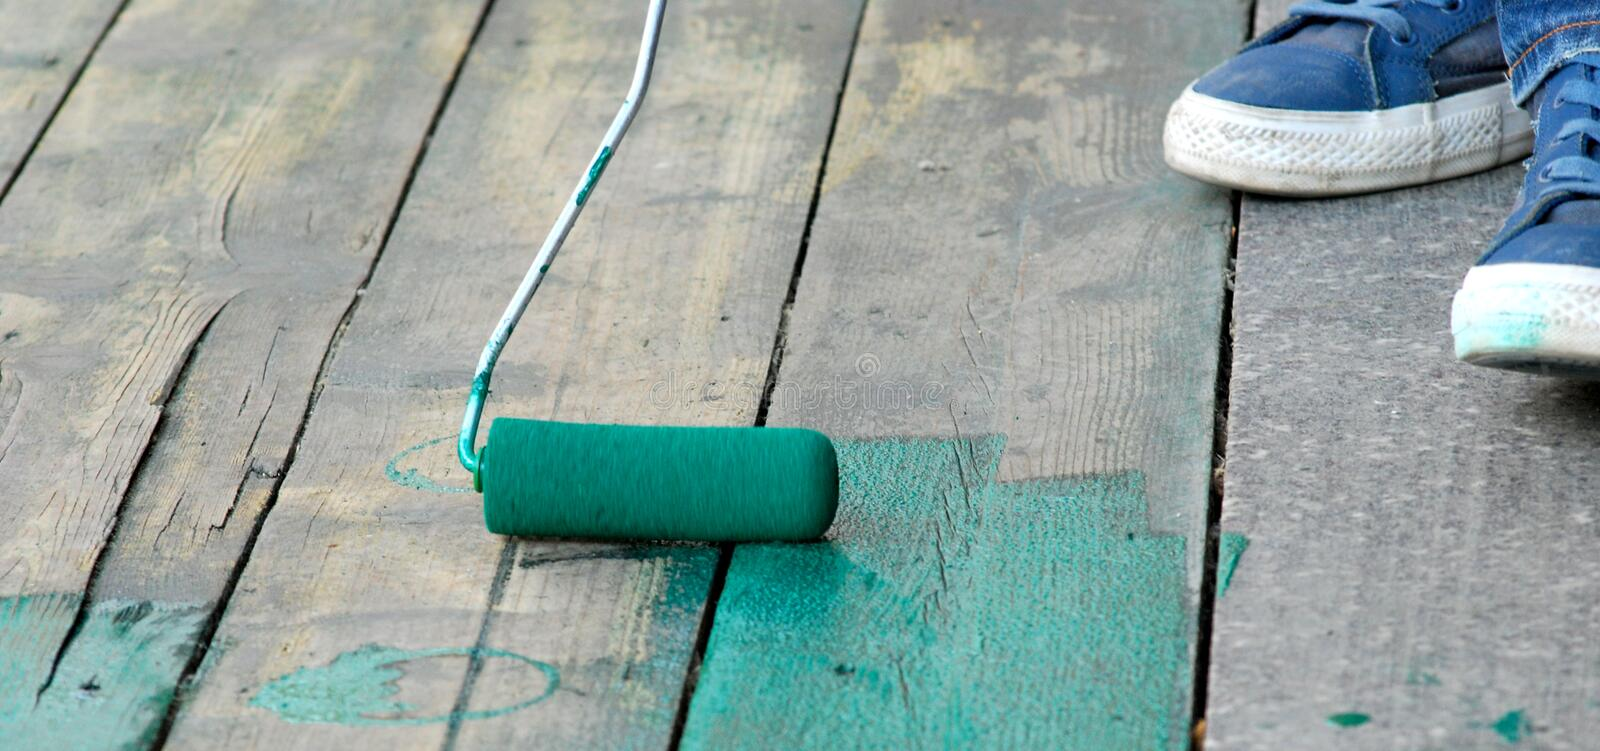 Contract painter painting a floor with green paint. Contract painter painting old wooden floor with green paint for waterproofing royalty free stock image